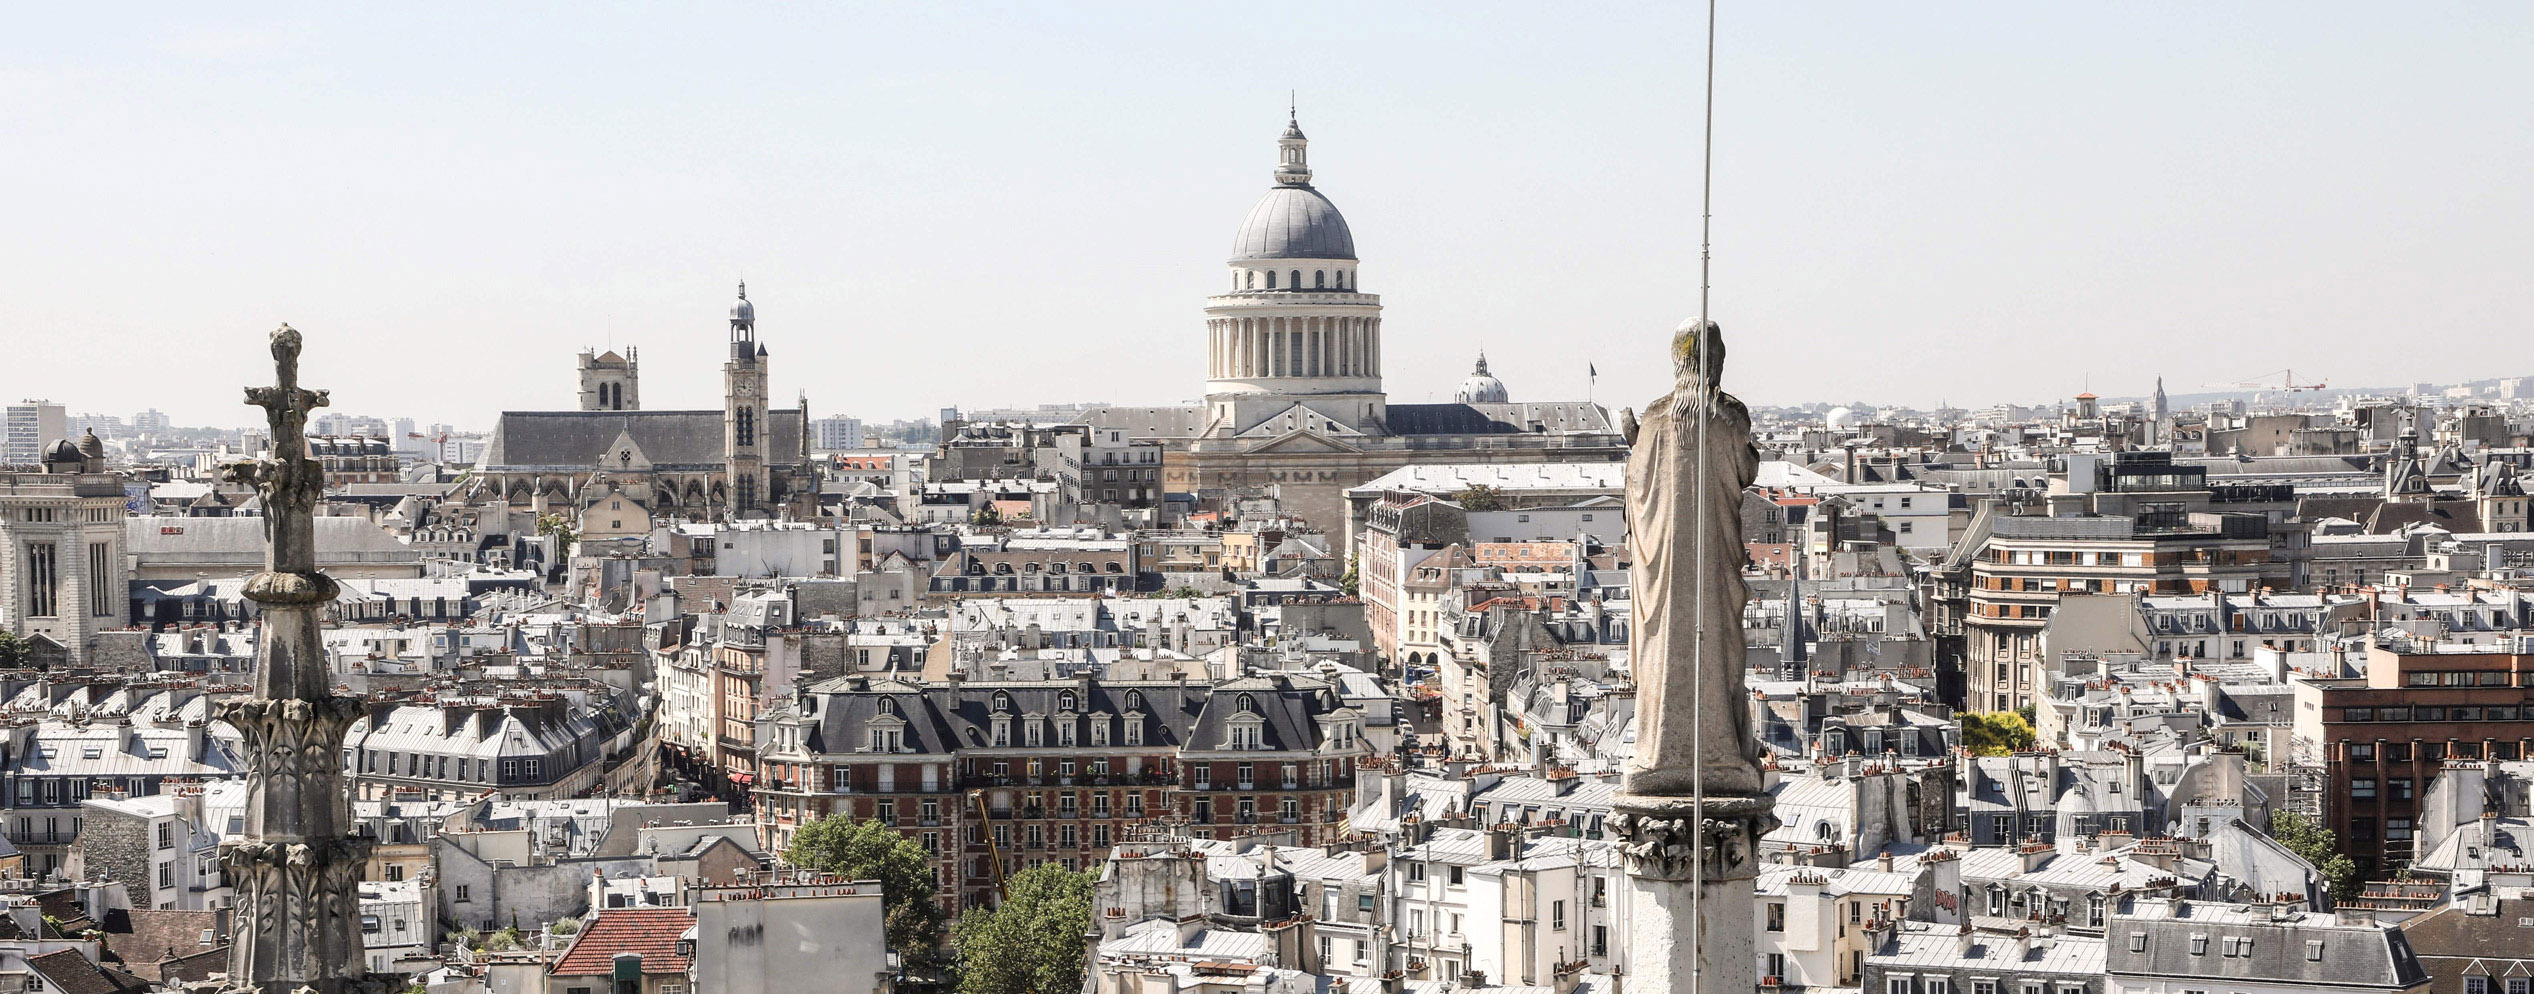 Airbnb Contests Paris City Hall Claim of Illegal Advertisements